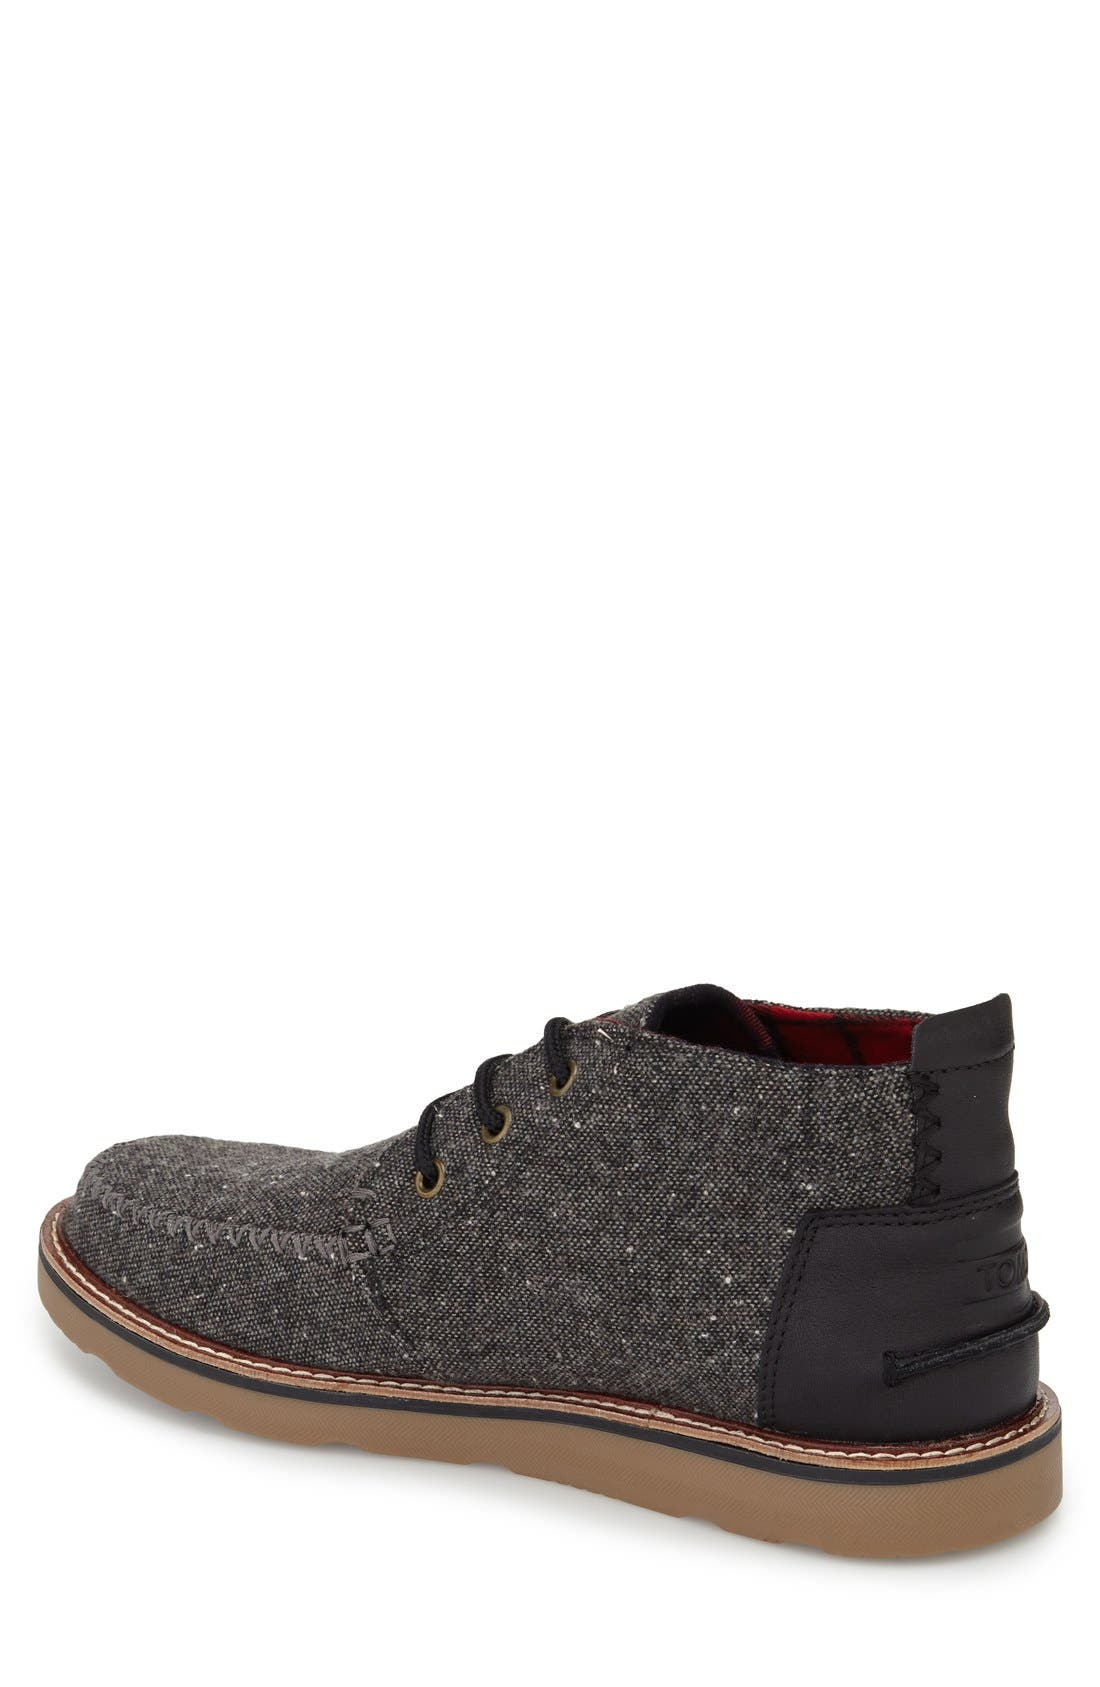 Alternate Image 2  - TOMS Chukka Boot (Men)